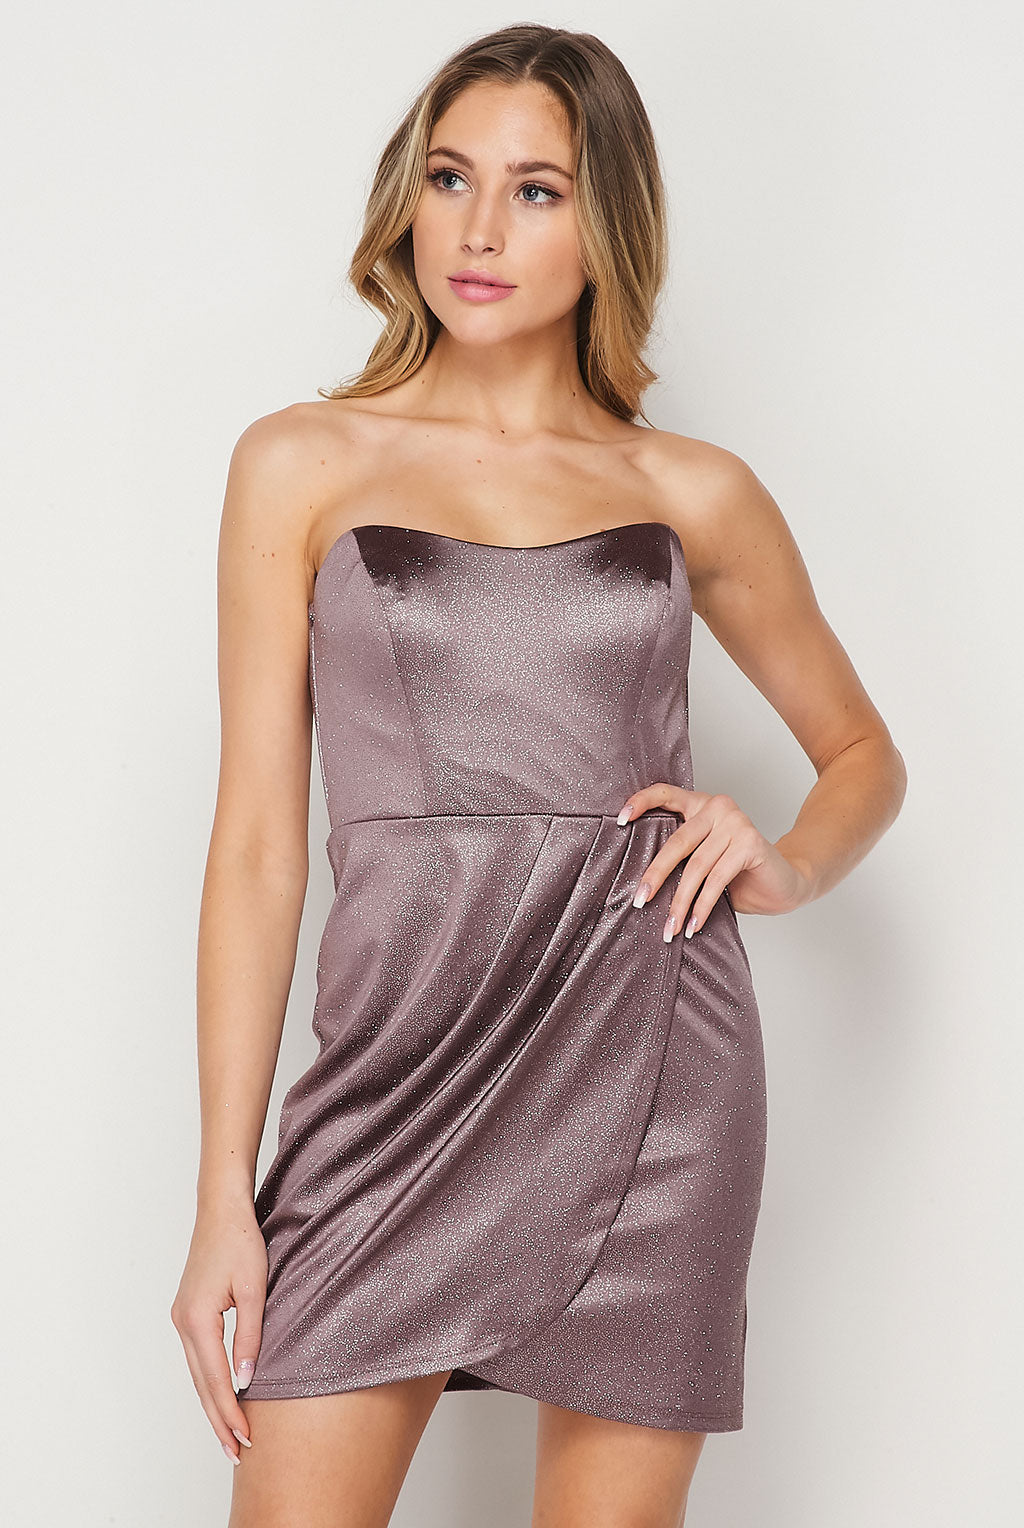 Teeze Me | Strapless Glitter Wrap Short Dress | Taupe